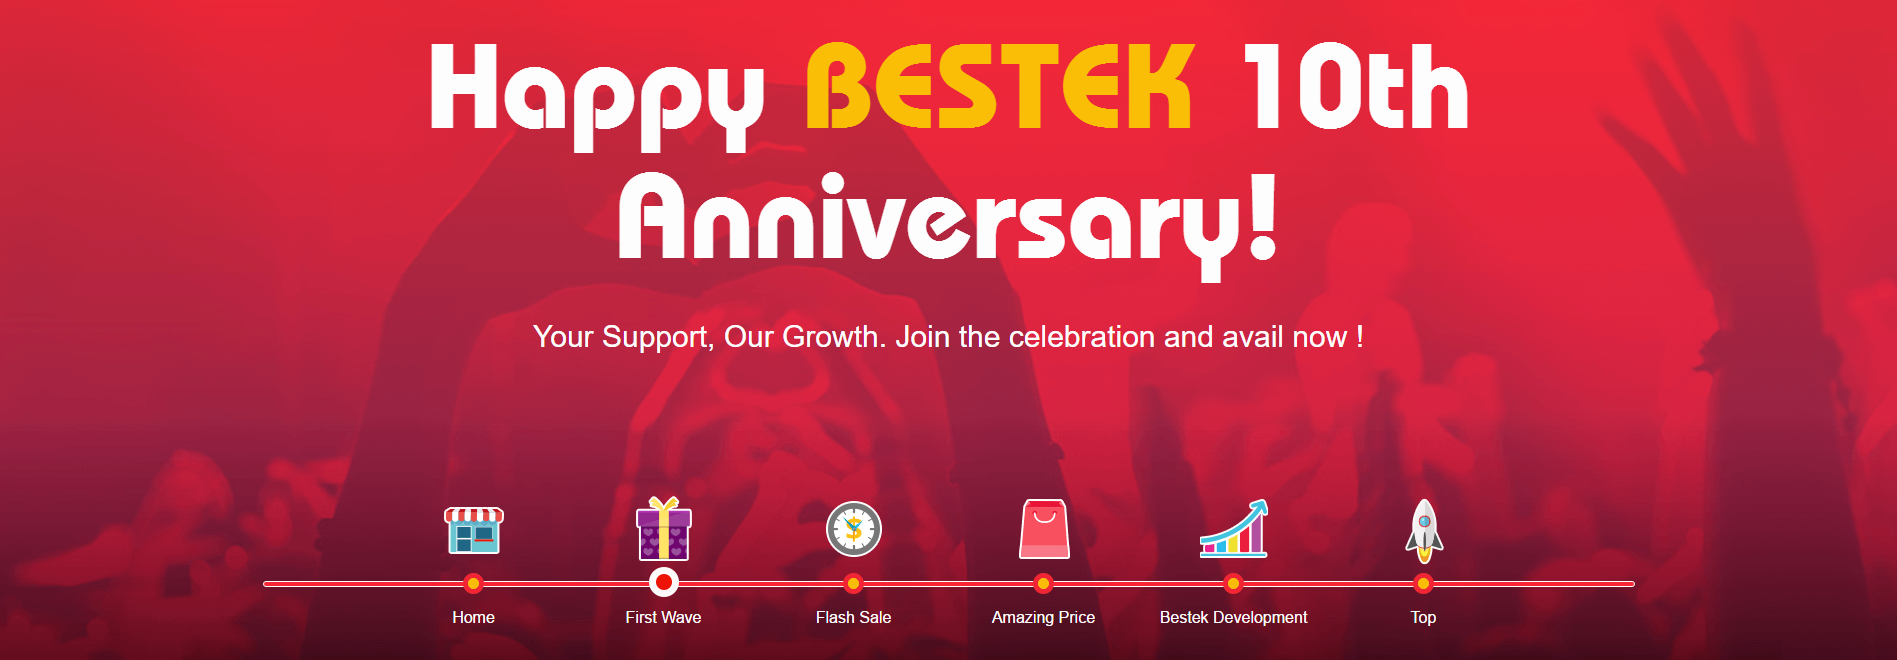 Bestek 10th Anniversary Sale Image 1